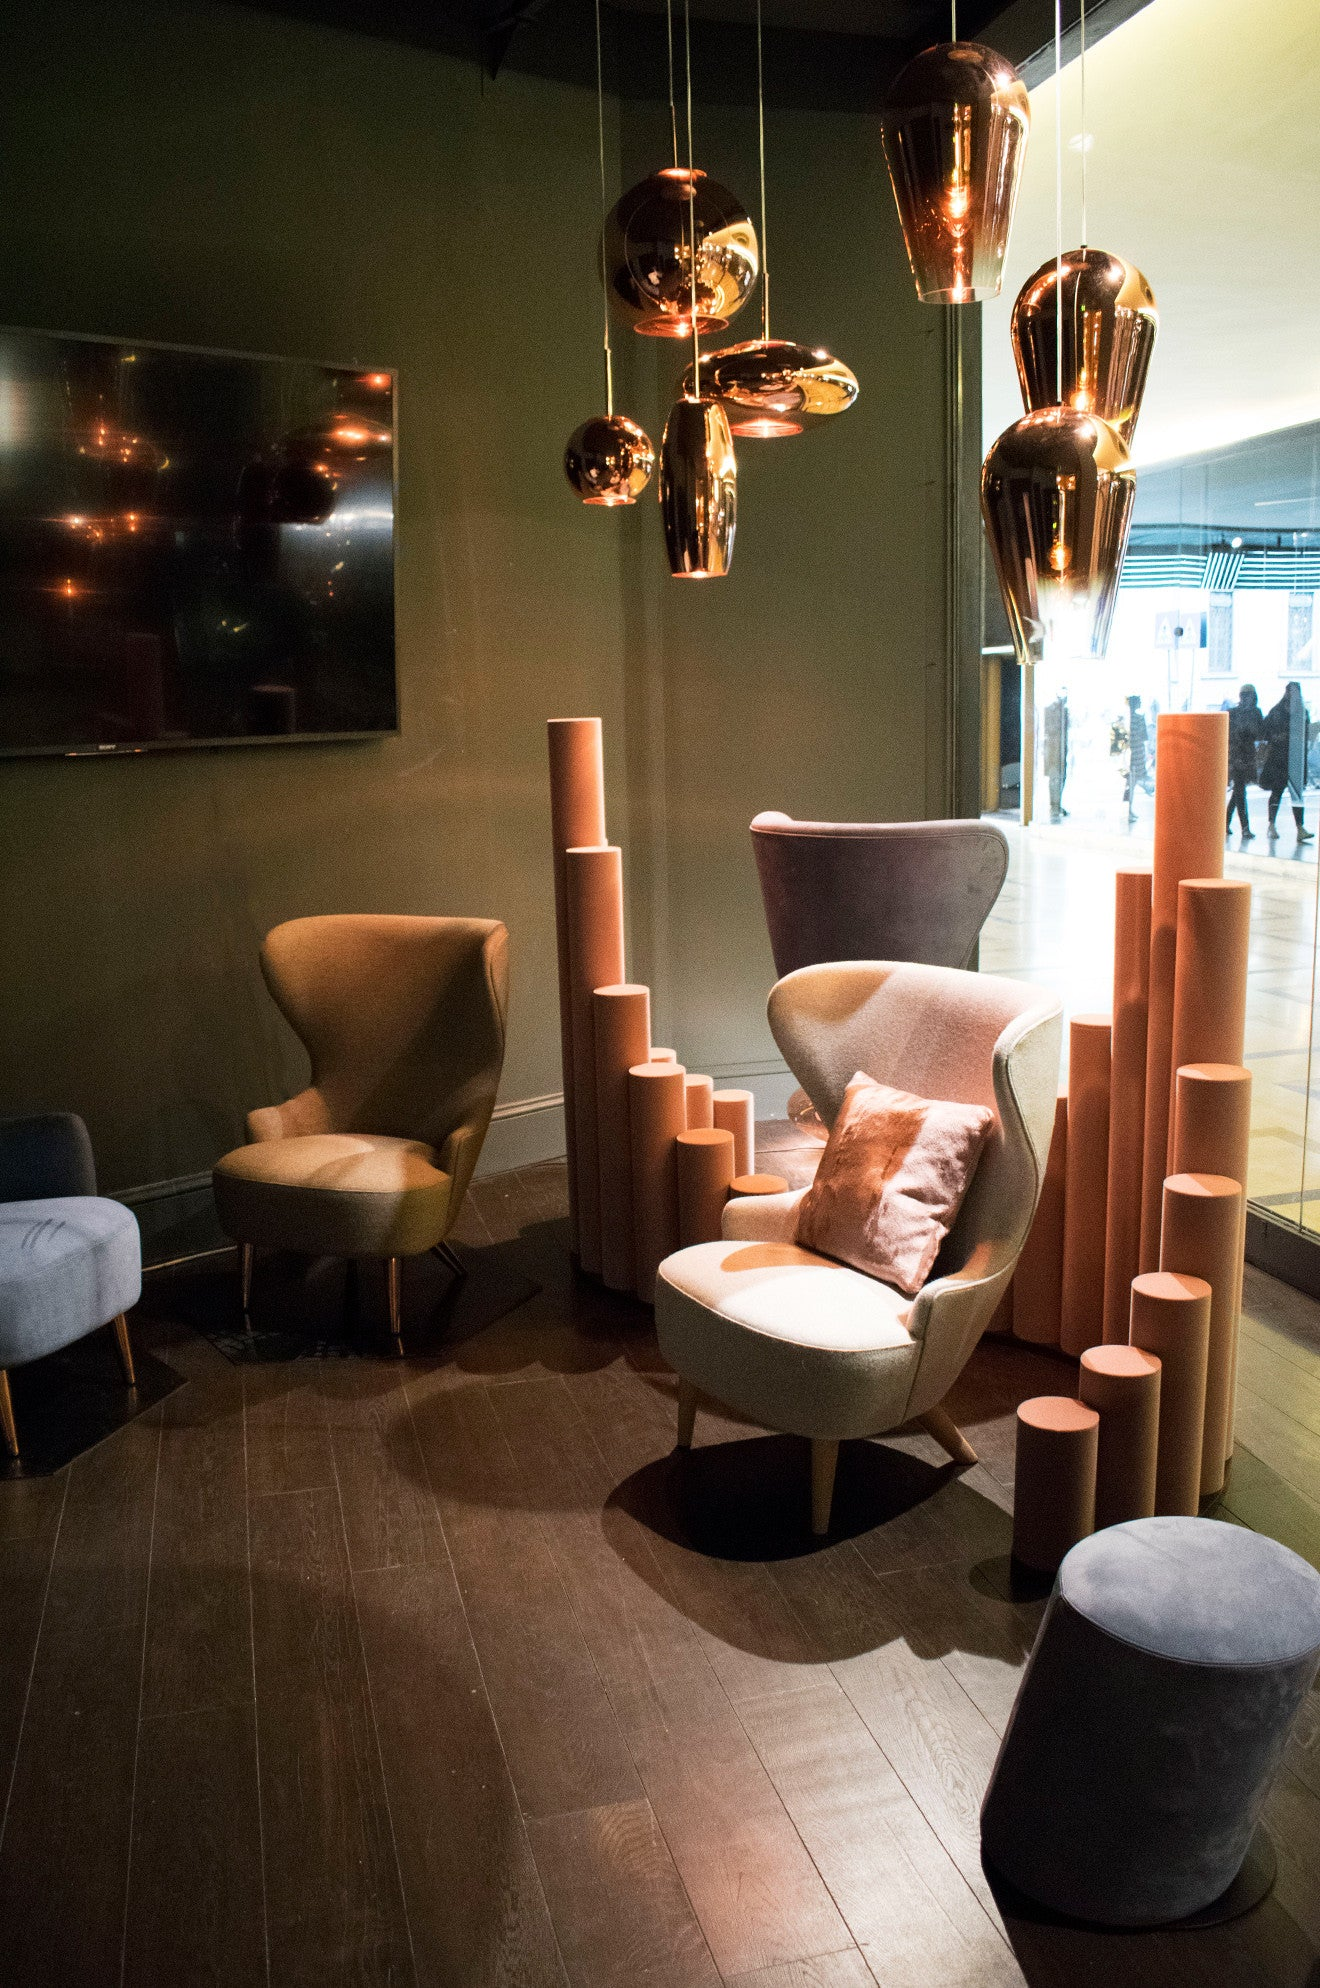 Tom Dixon Multiplex Milan chairs and lighting